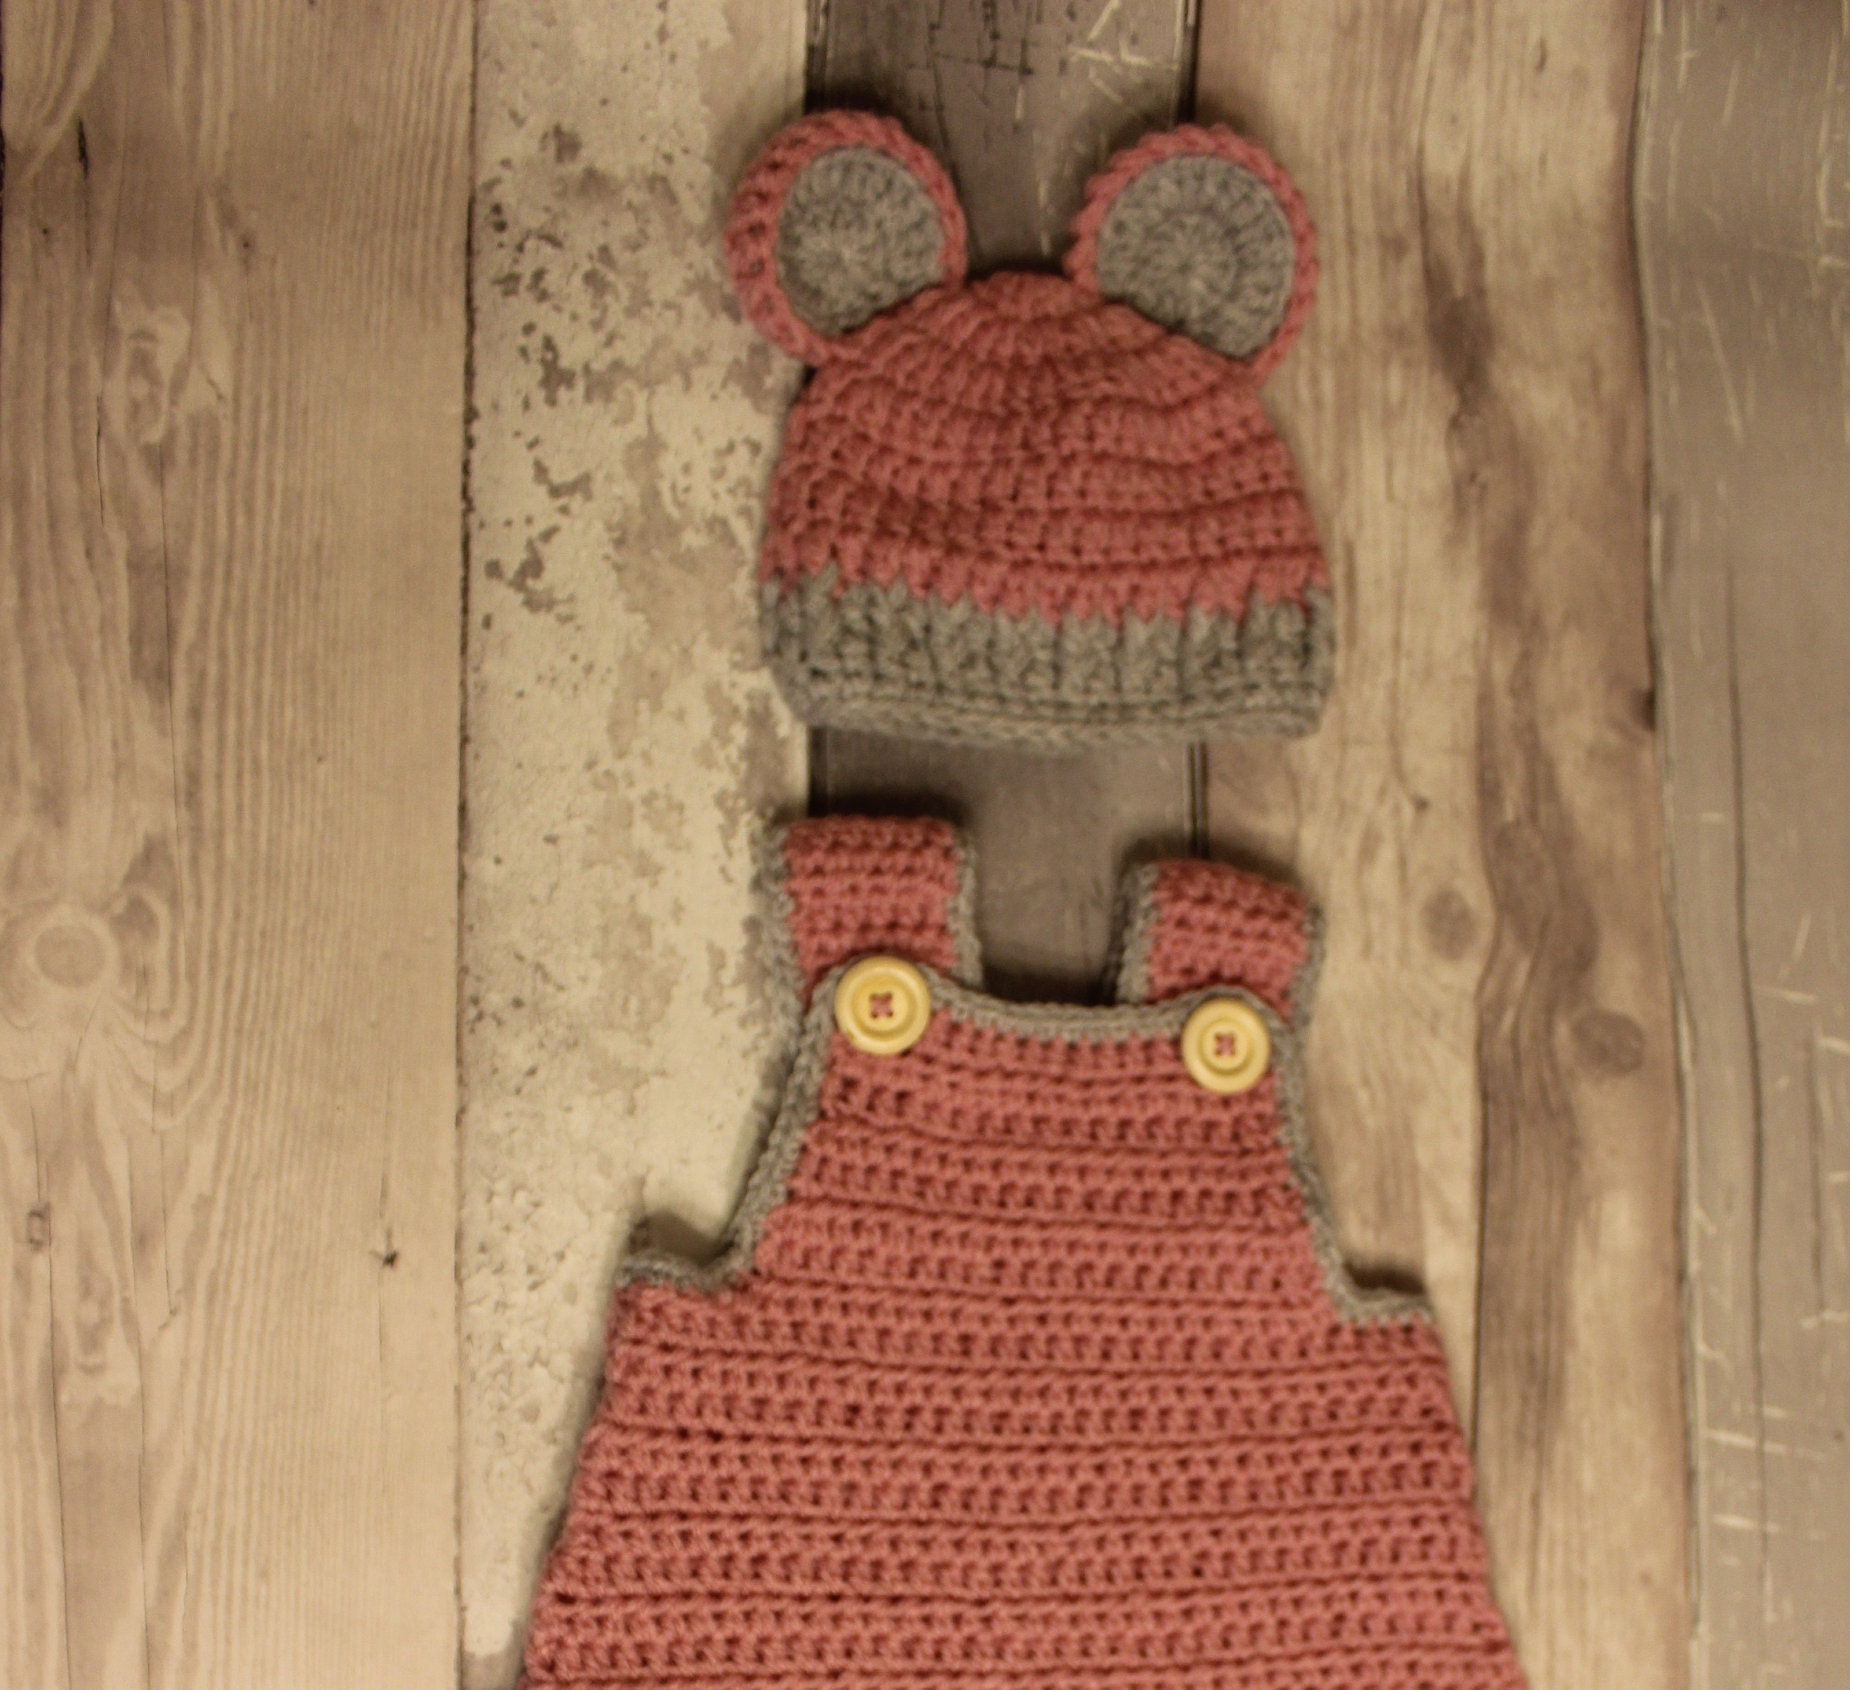 Dungaree Crochet Pattern Baby Dungaree Crochet Pattern With Etsy